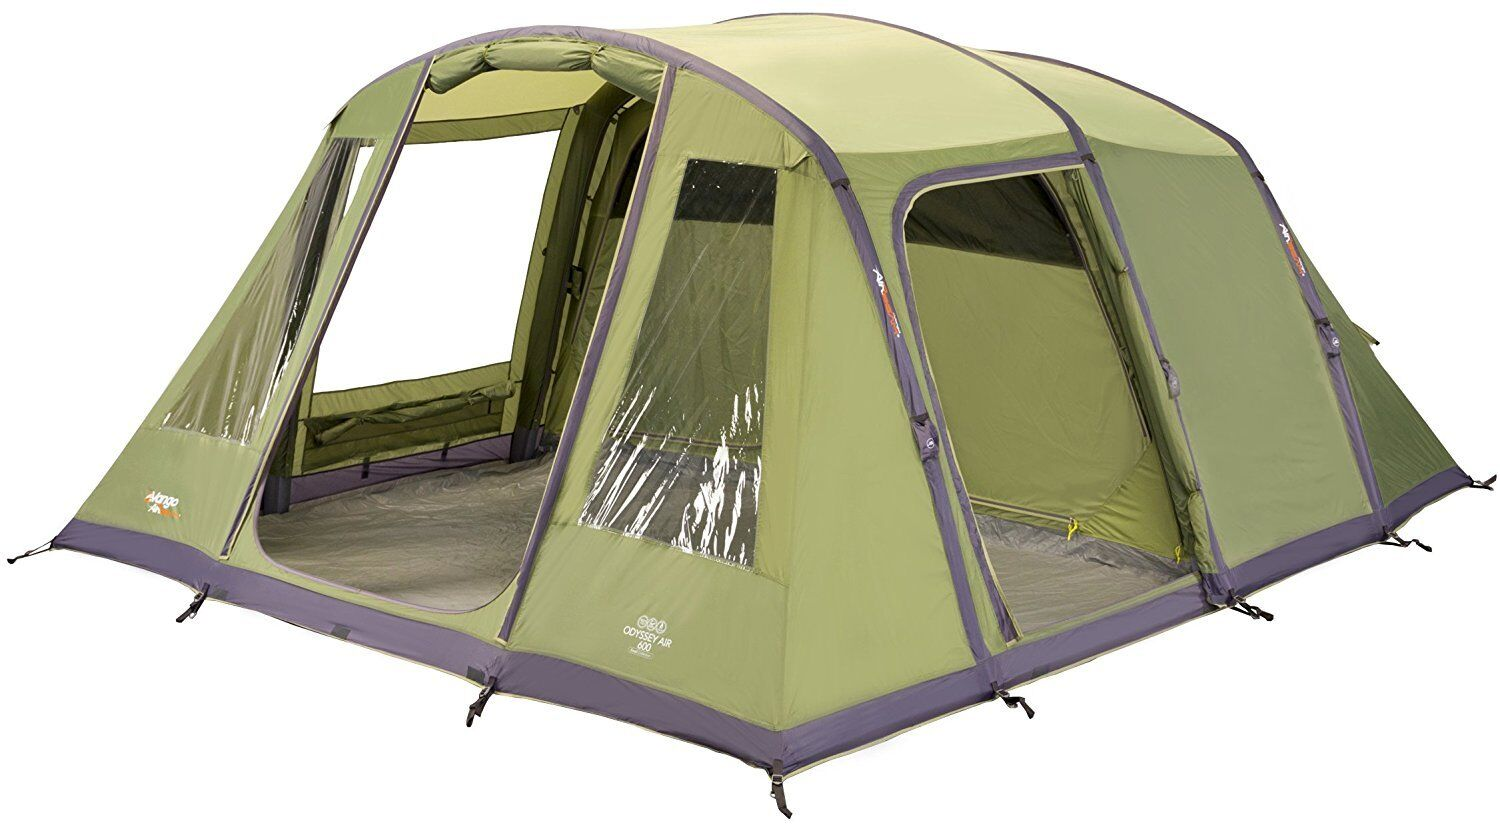 Vango Odyssey gonflable famille tente tunnel, Epsom vert, Airbeam 600.